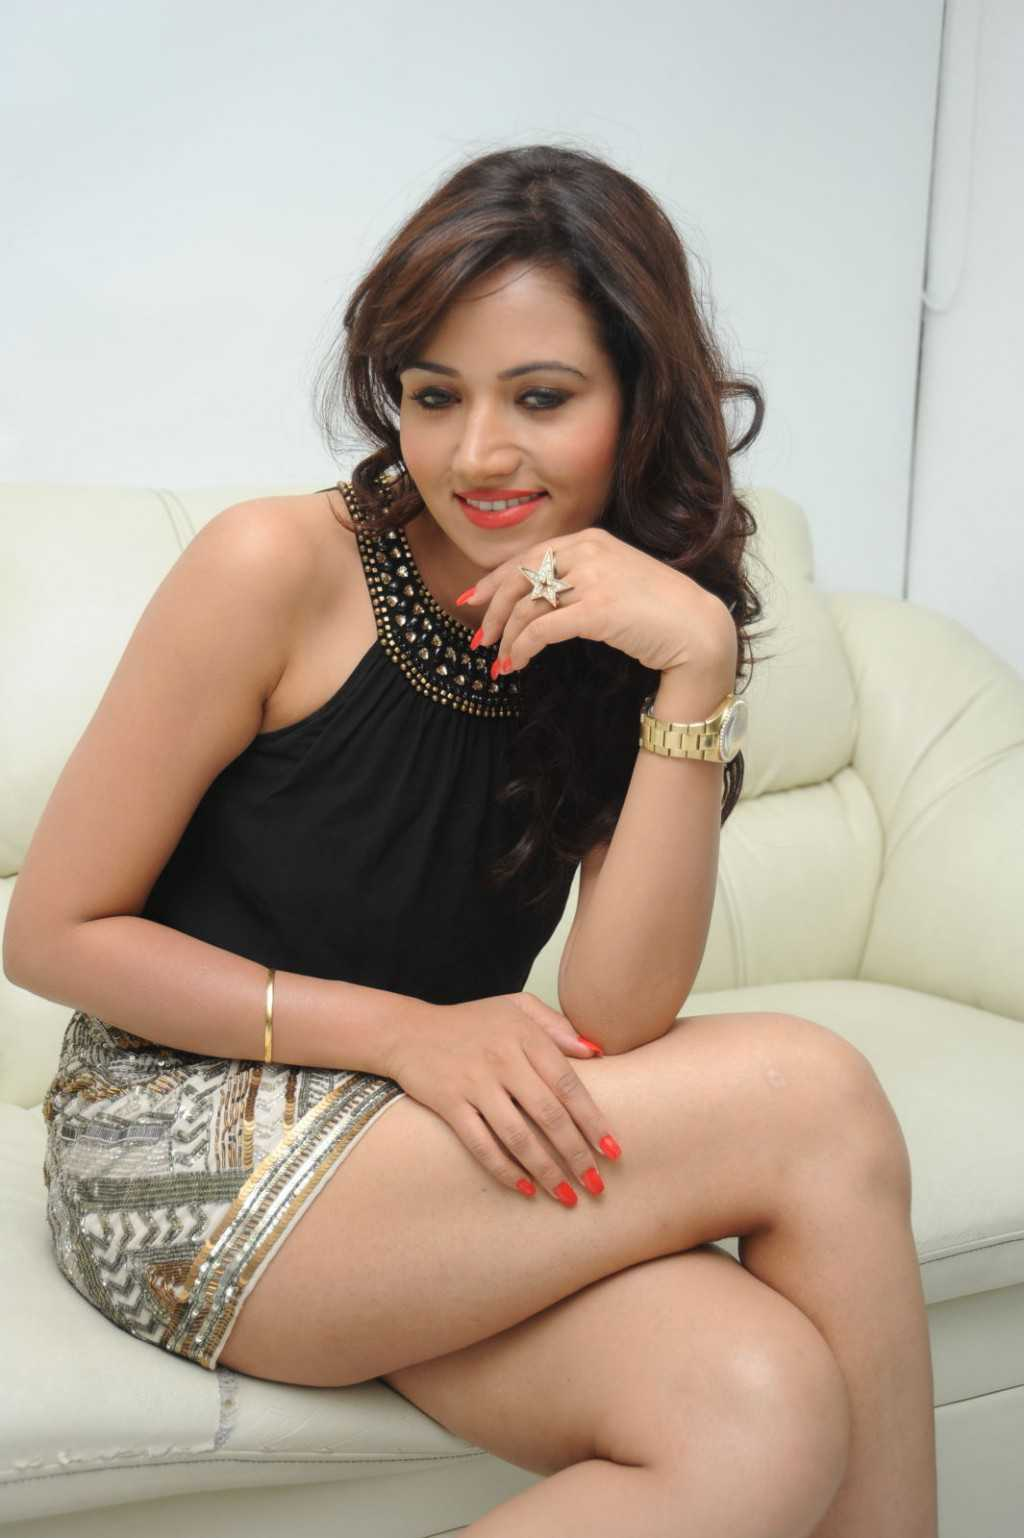 South-Indian-Actress-Preeti-Rana-Hot-Thigh-Show-Photos-1